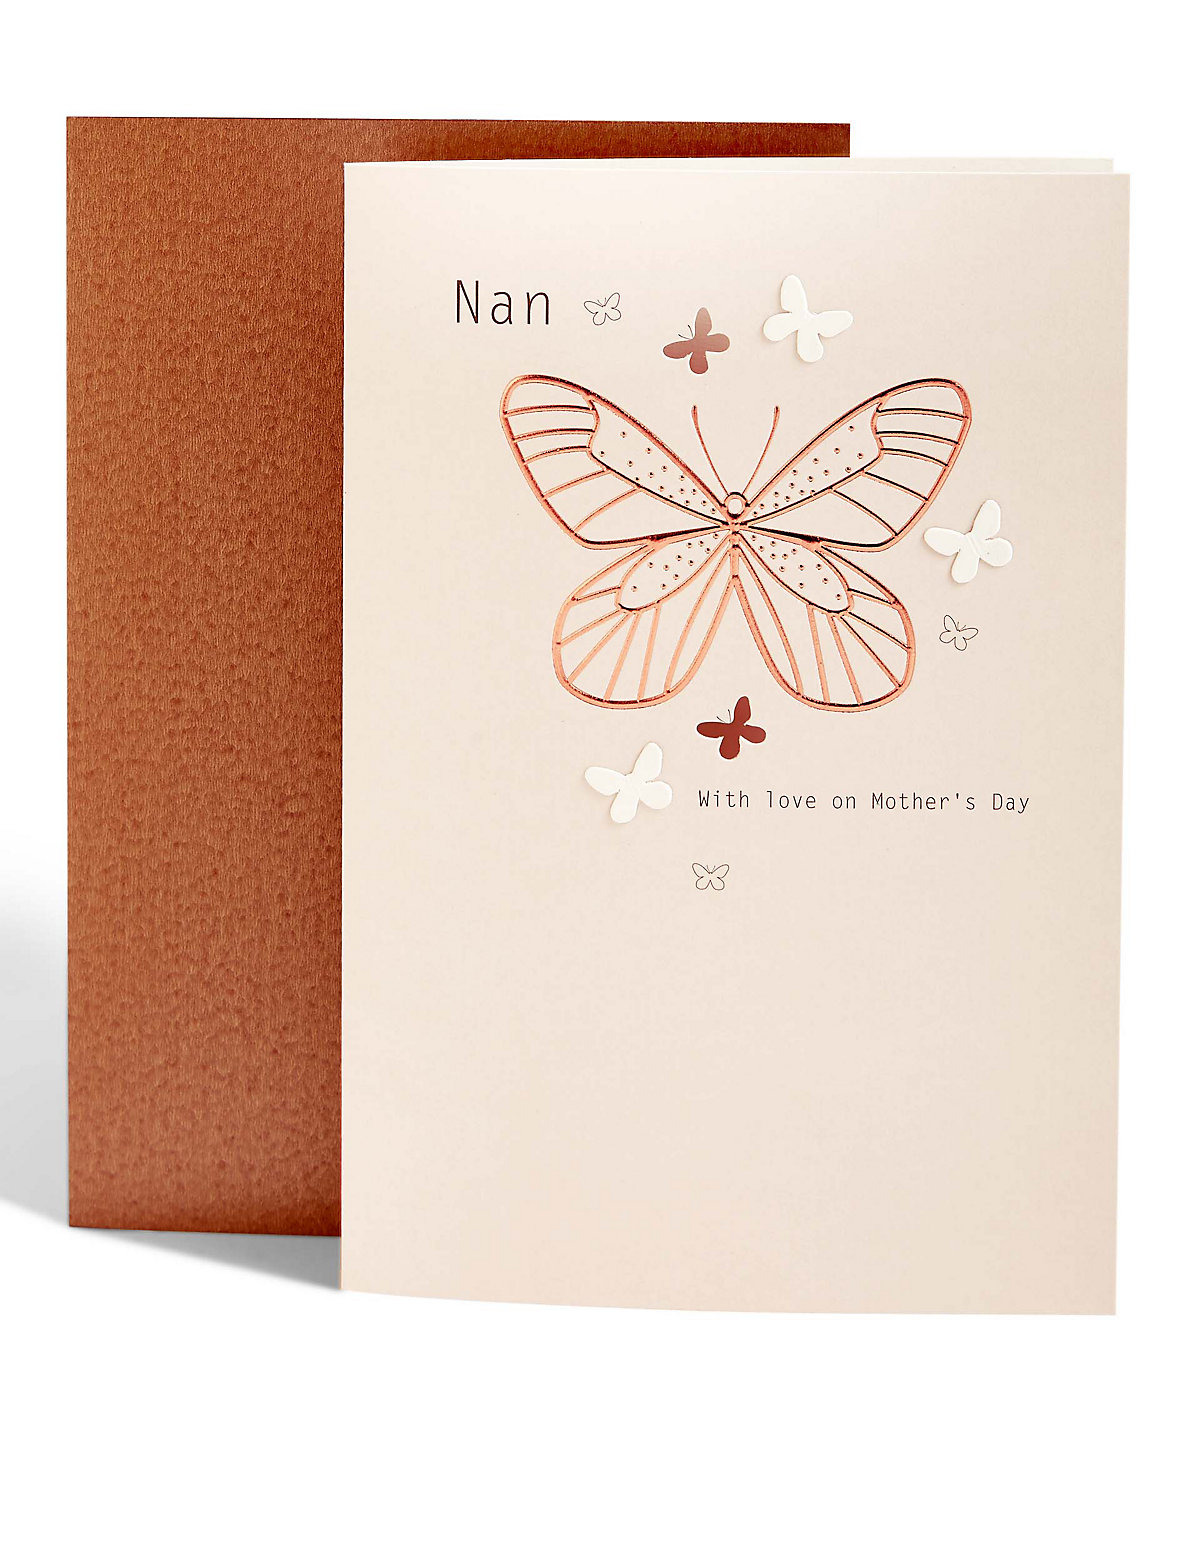 Nan Foil Butterfly Mother's Day Card